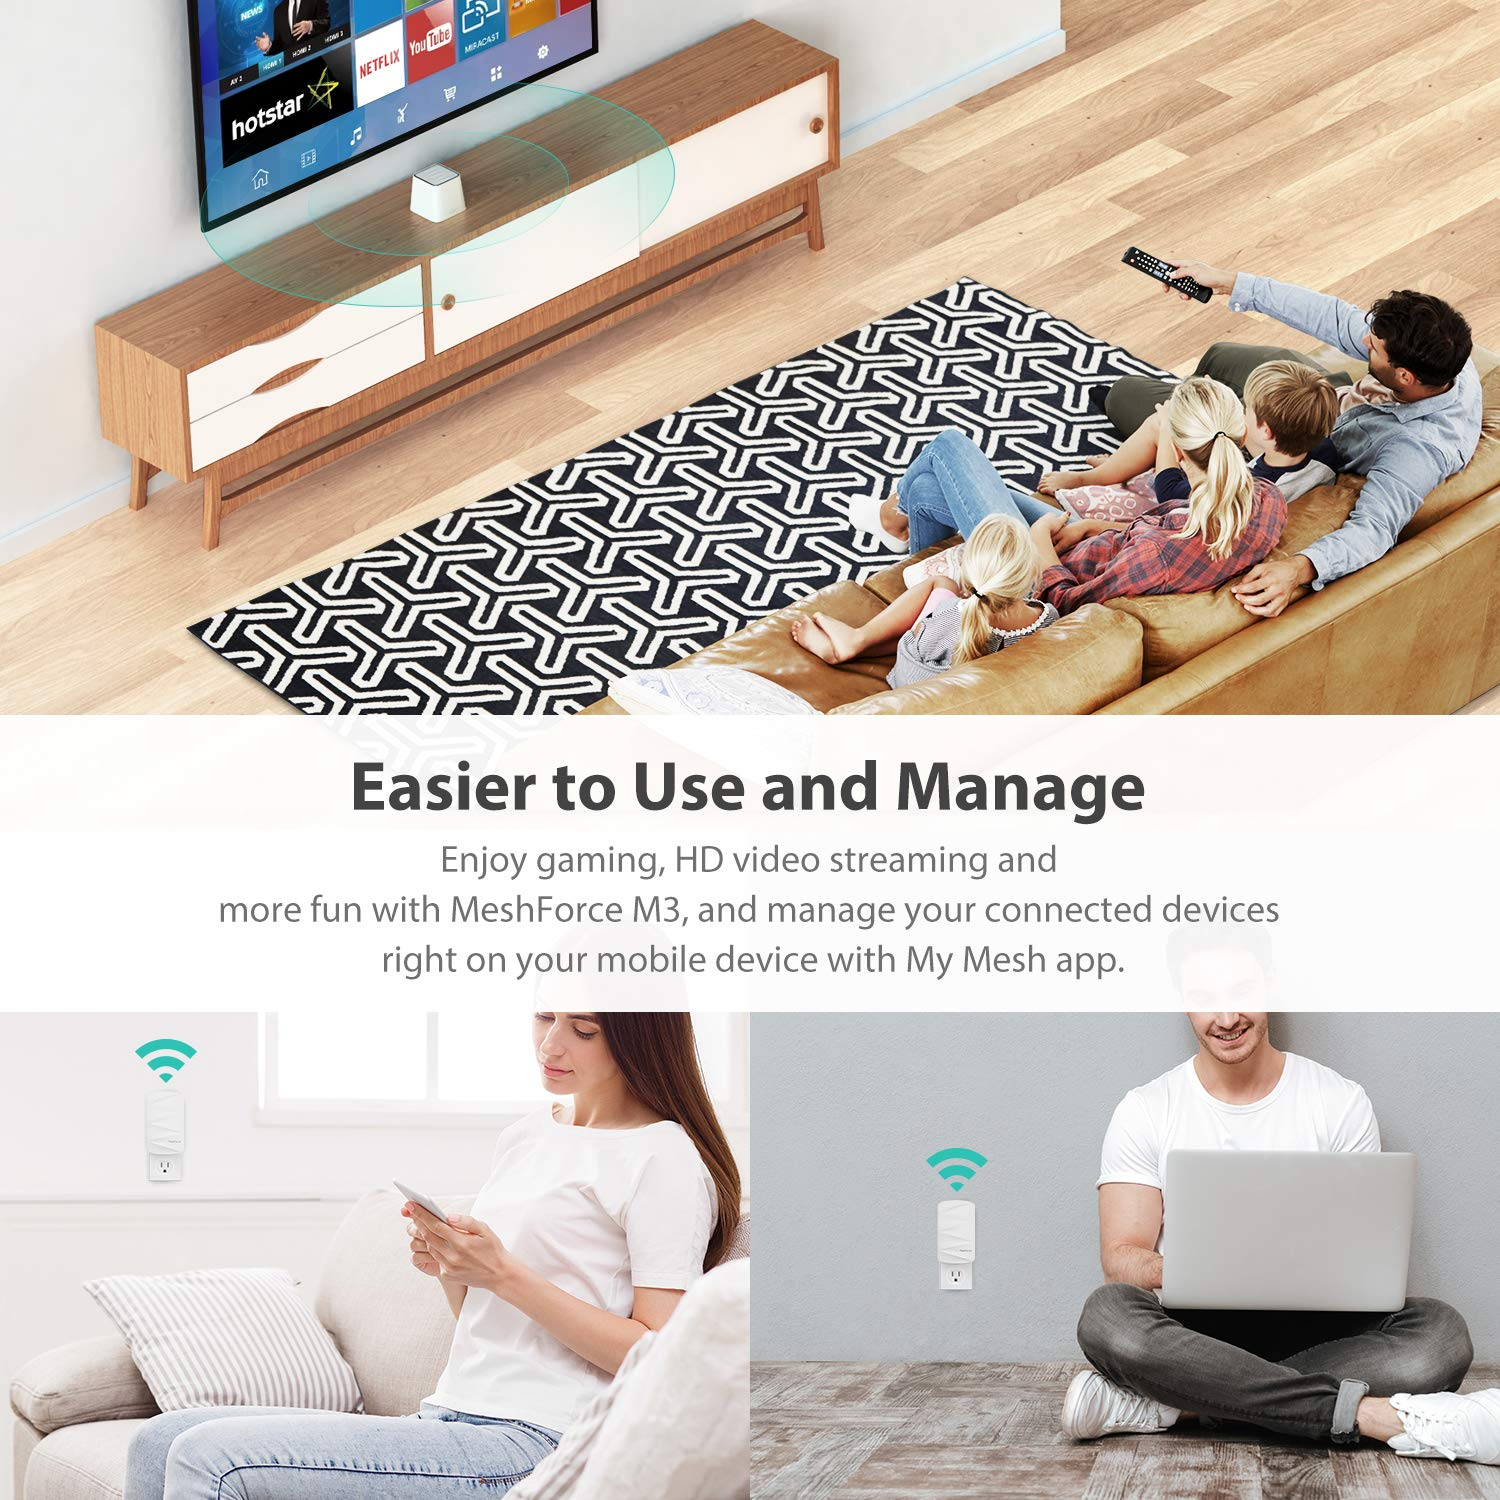 MeshForce Whole Home Mesh WiFi System M3 Suite (1 WiFi Point + 2 WiFi Dot) - Dual Band WiFi System Router Replacement and Wall Plug Extender - High Performance Wireless Coverage for 5+ Bedrooms Home by Meshforce (Image #5)